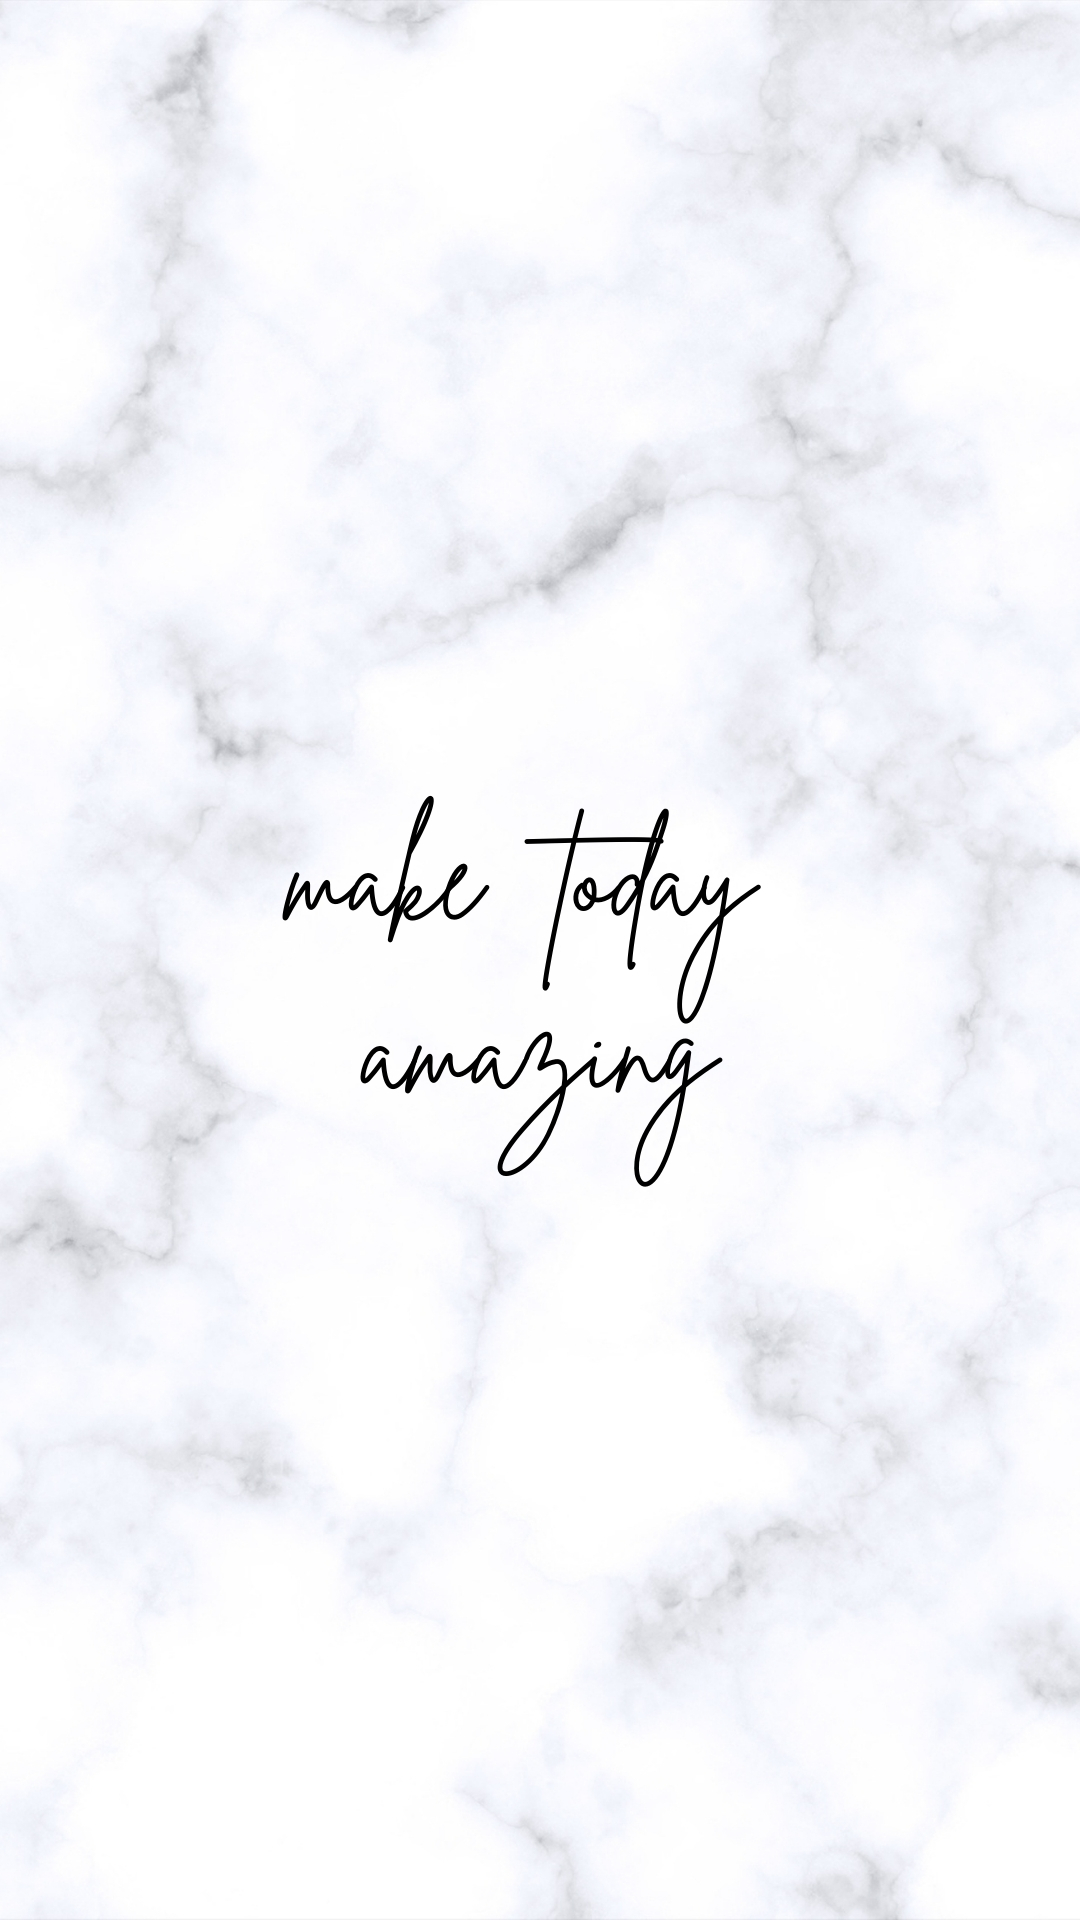 Motivational And Inspirational Wallpapers For iPhone: Make Today Amazing